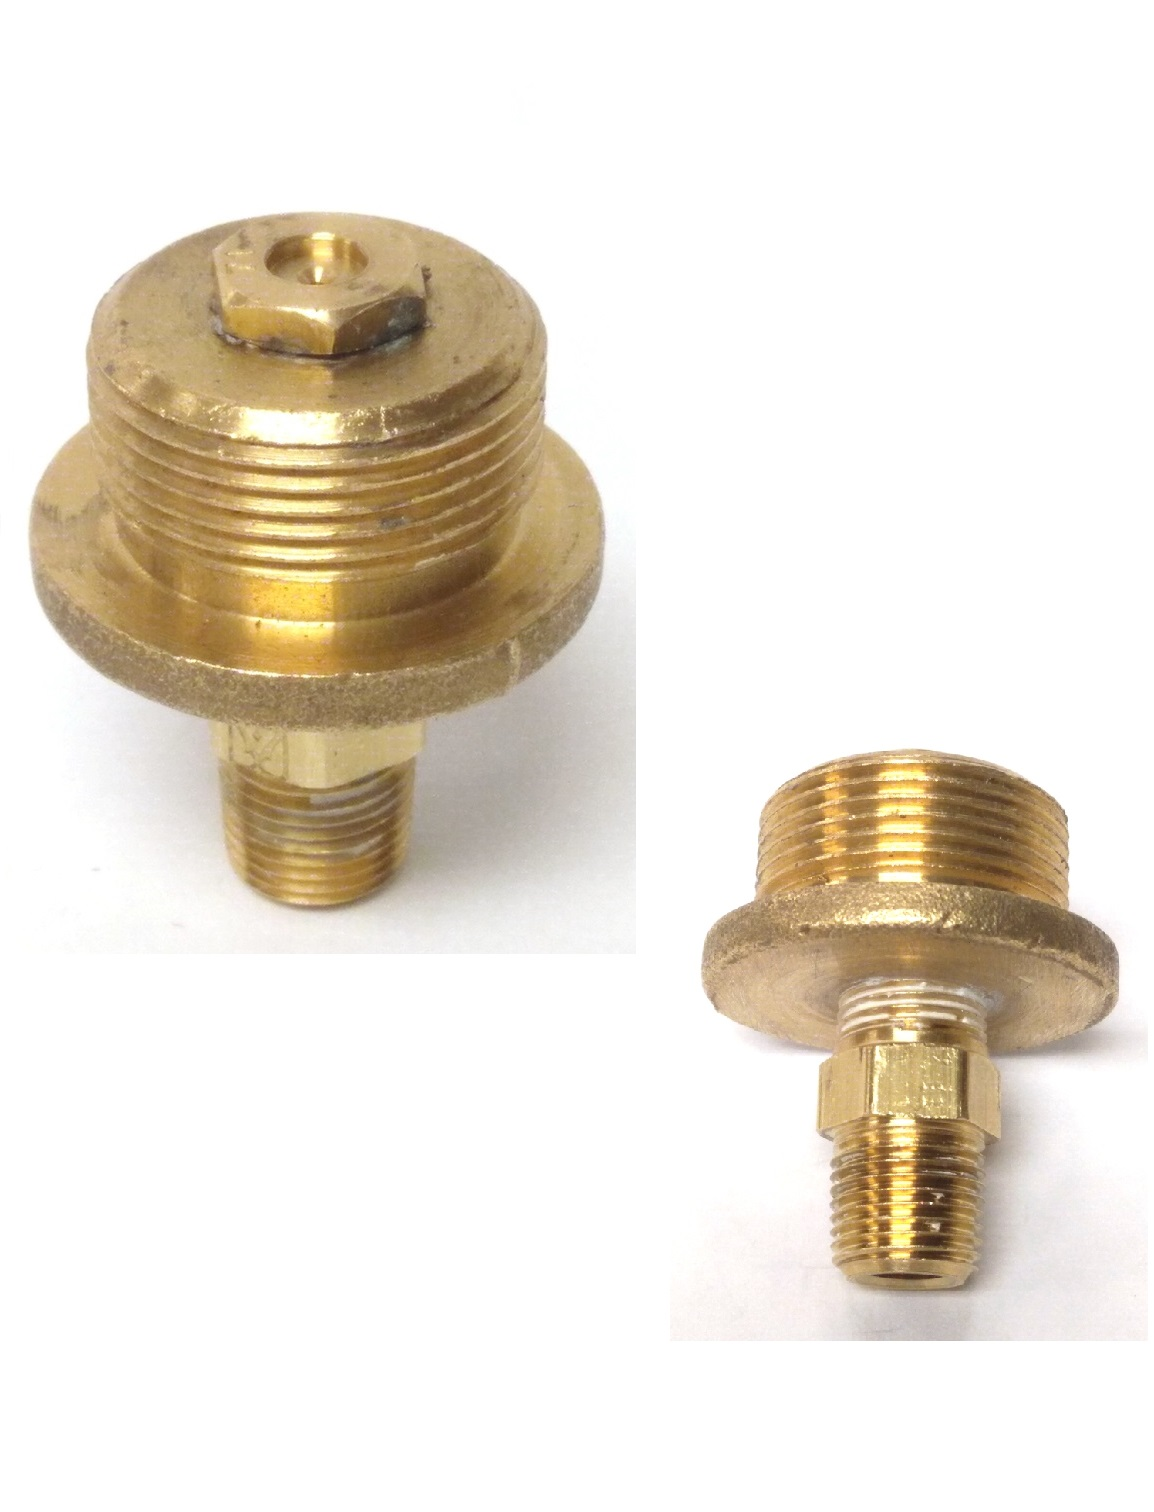 Brass - Mantle Burner Screw Base